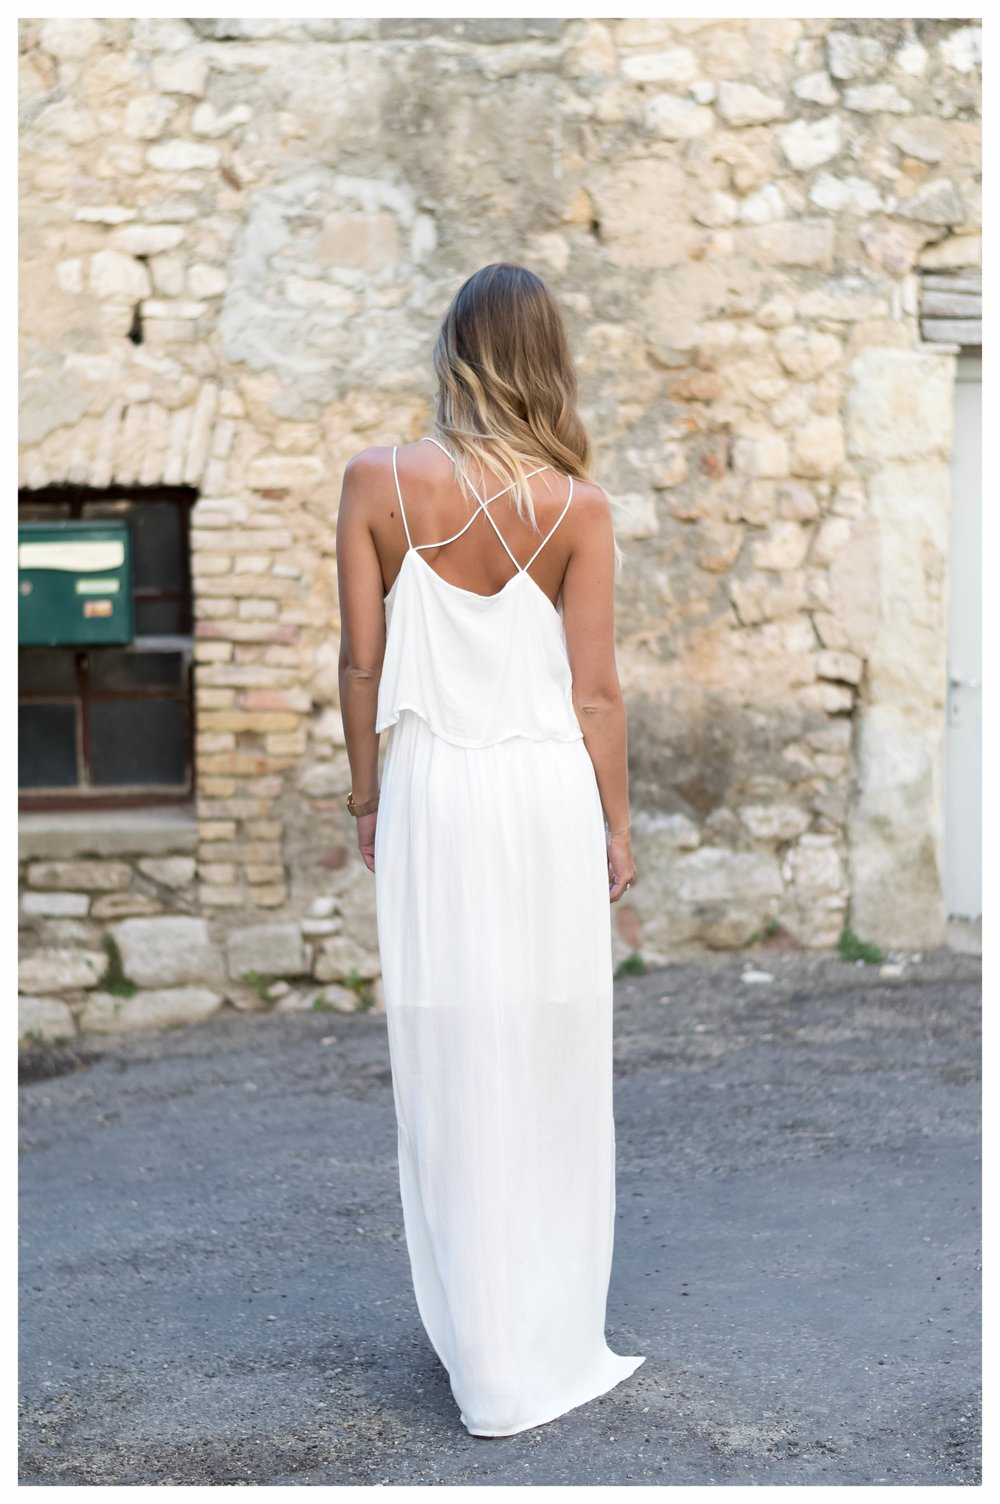 White Dress - OSIARAH.COM (11 sur 16).jpg